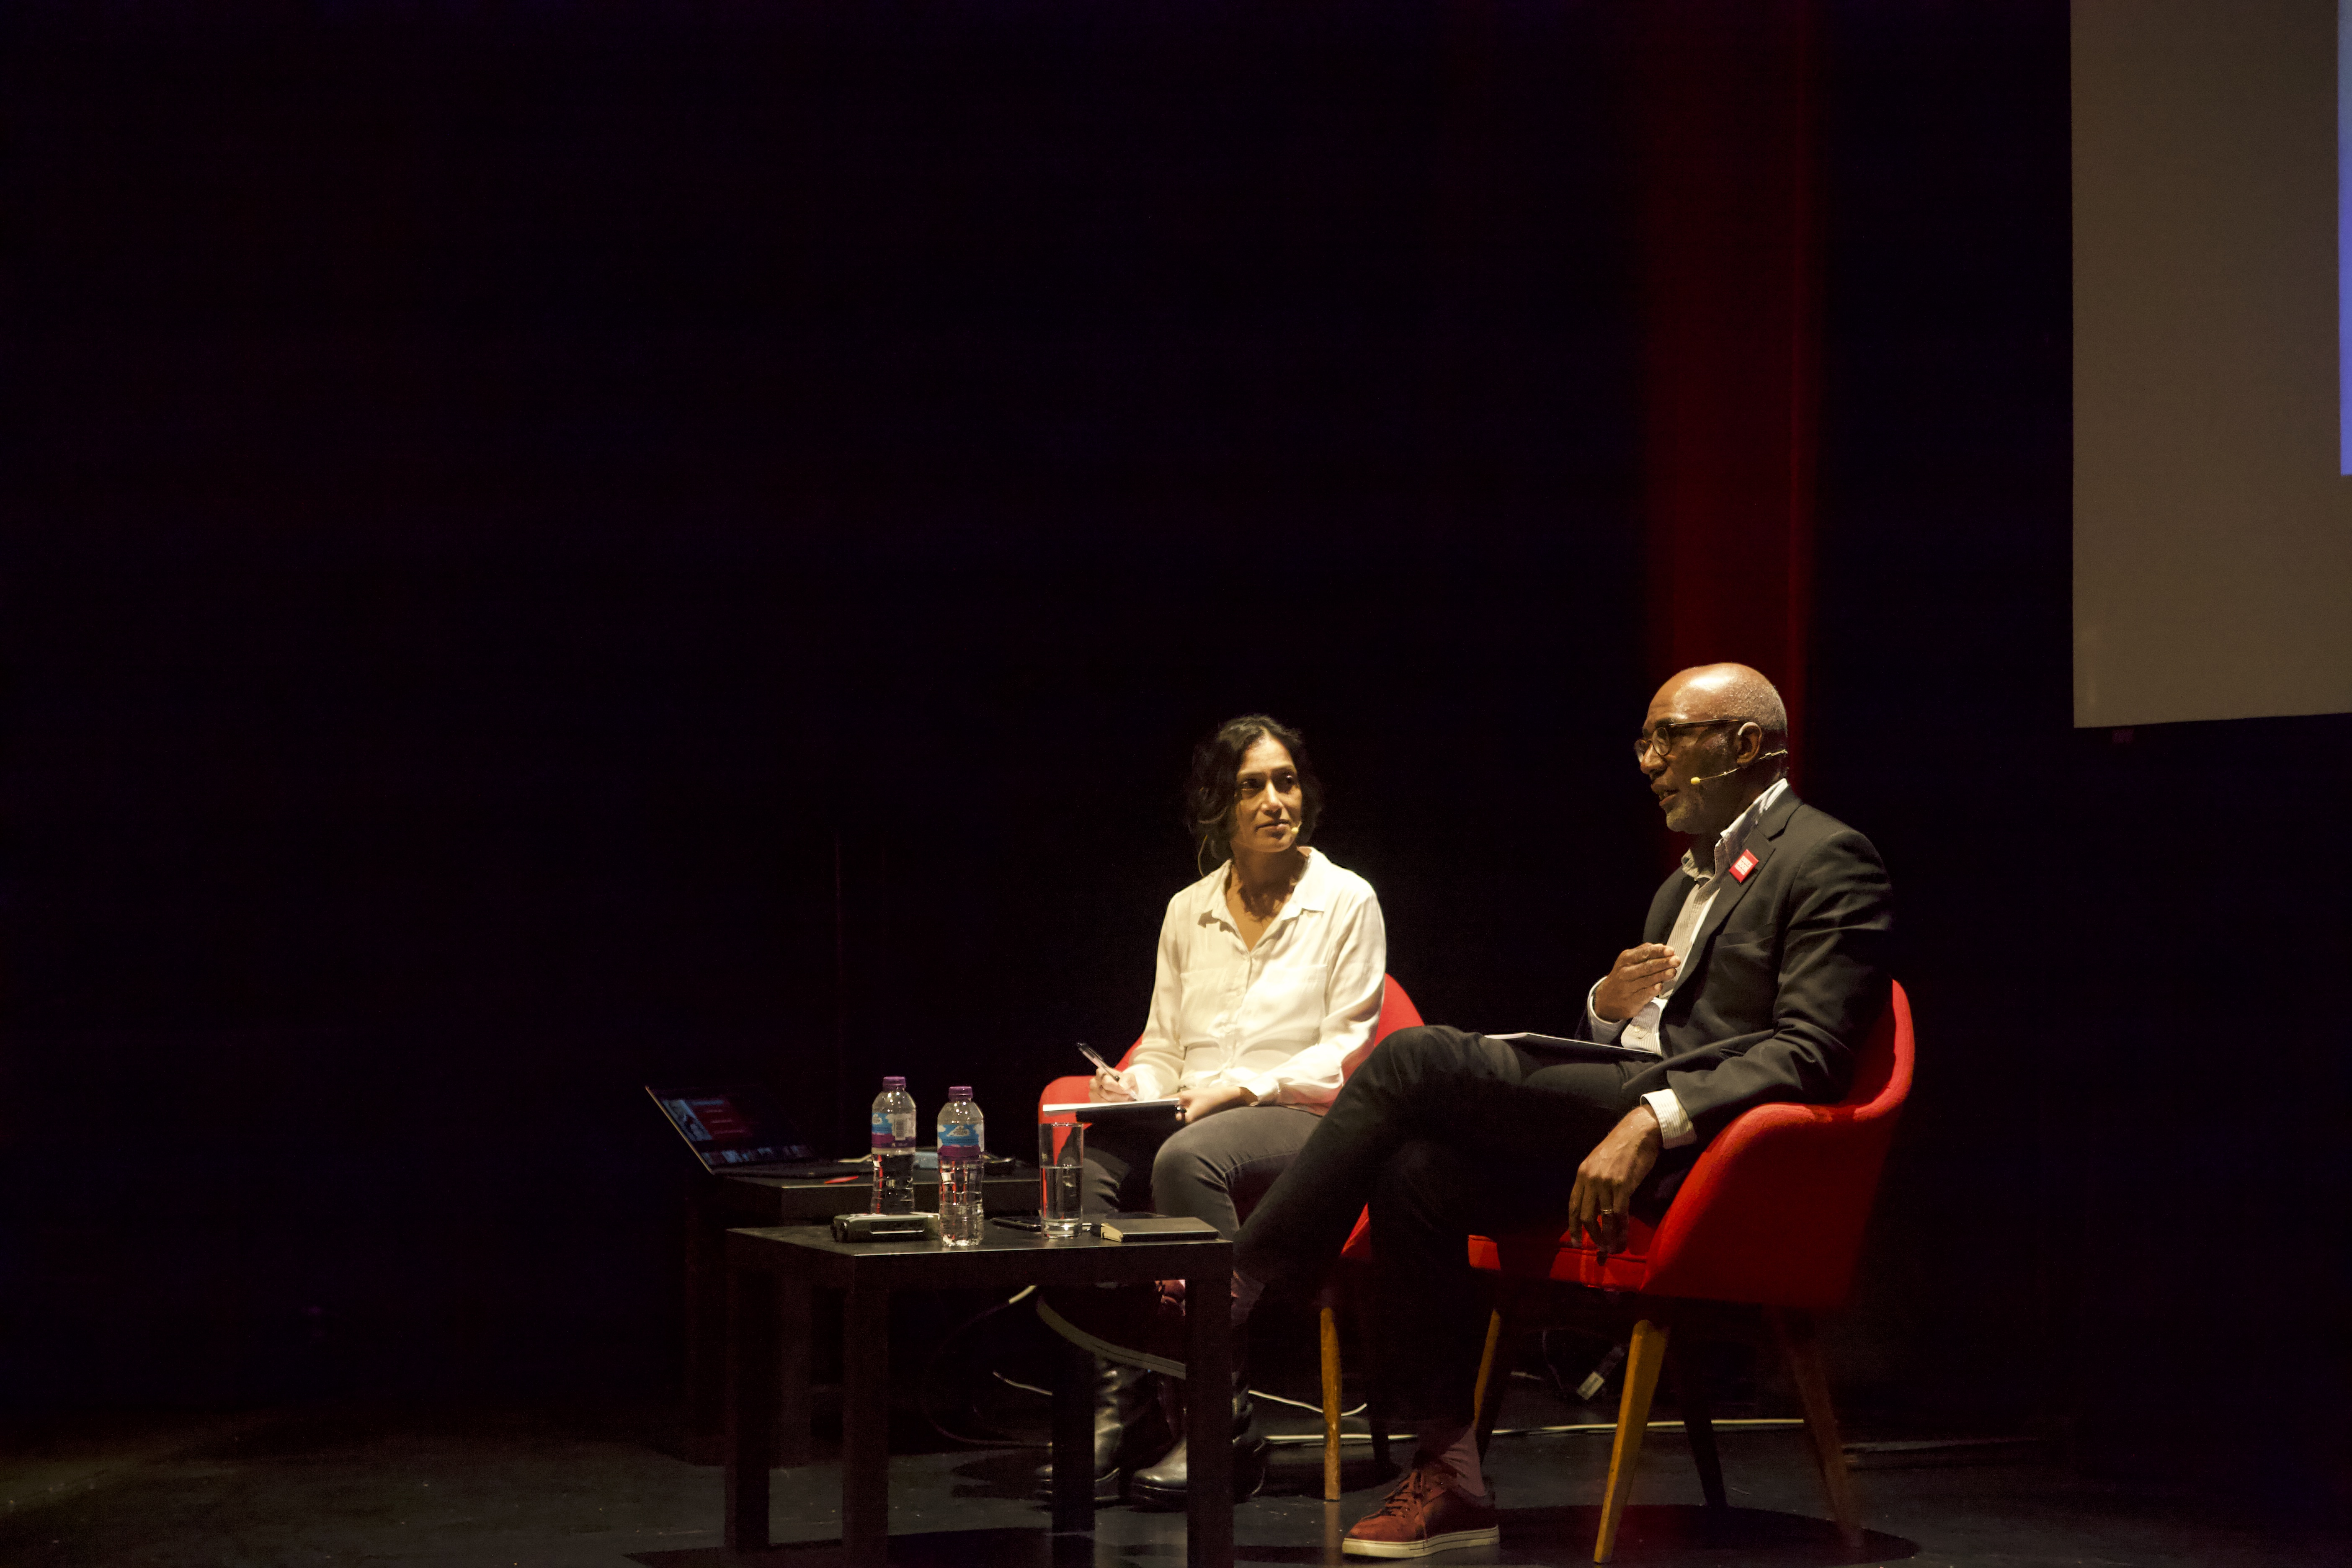 Shohini Chaudhuri and Trevor Phillips at the Essex Book Festival (Photo: Lewis Jennings / Index on Censorship)